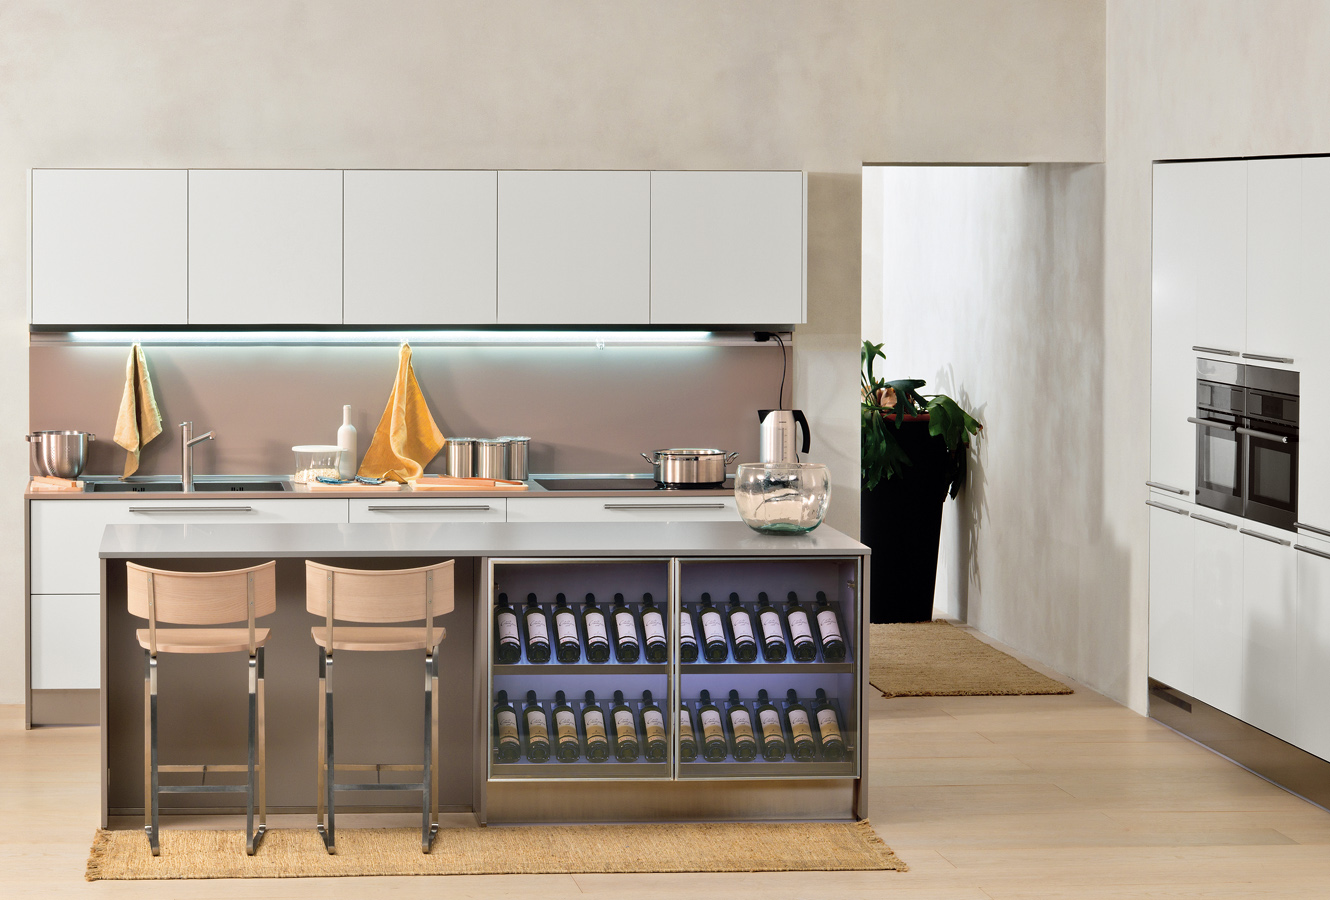 this classy kitchen space has a full wine rack built into the island it adds - Italian Kitchen Design Sinks